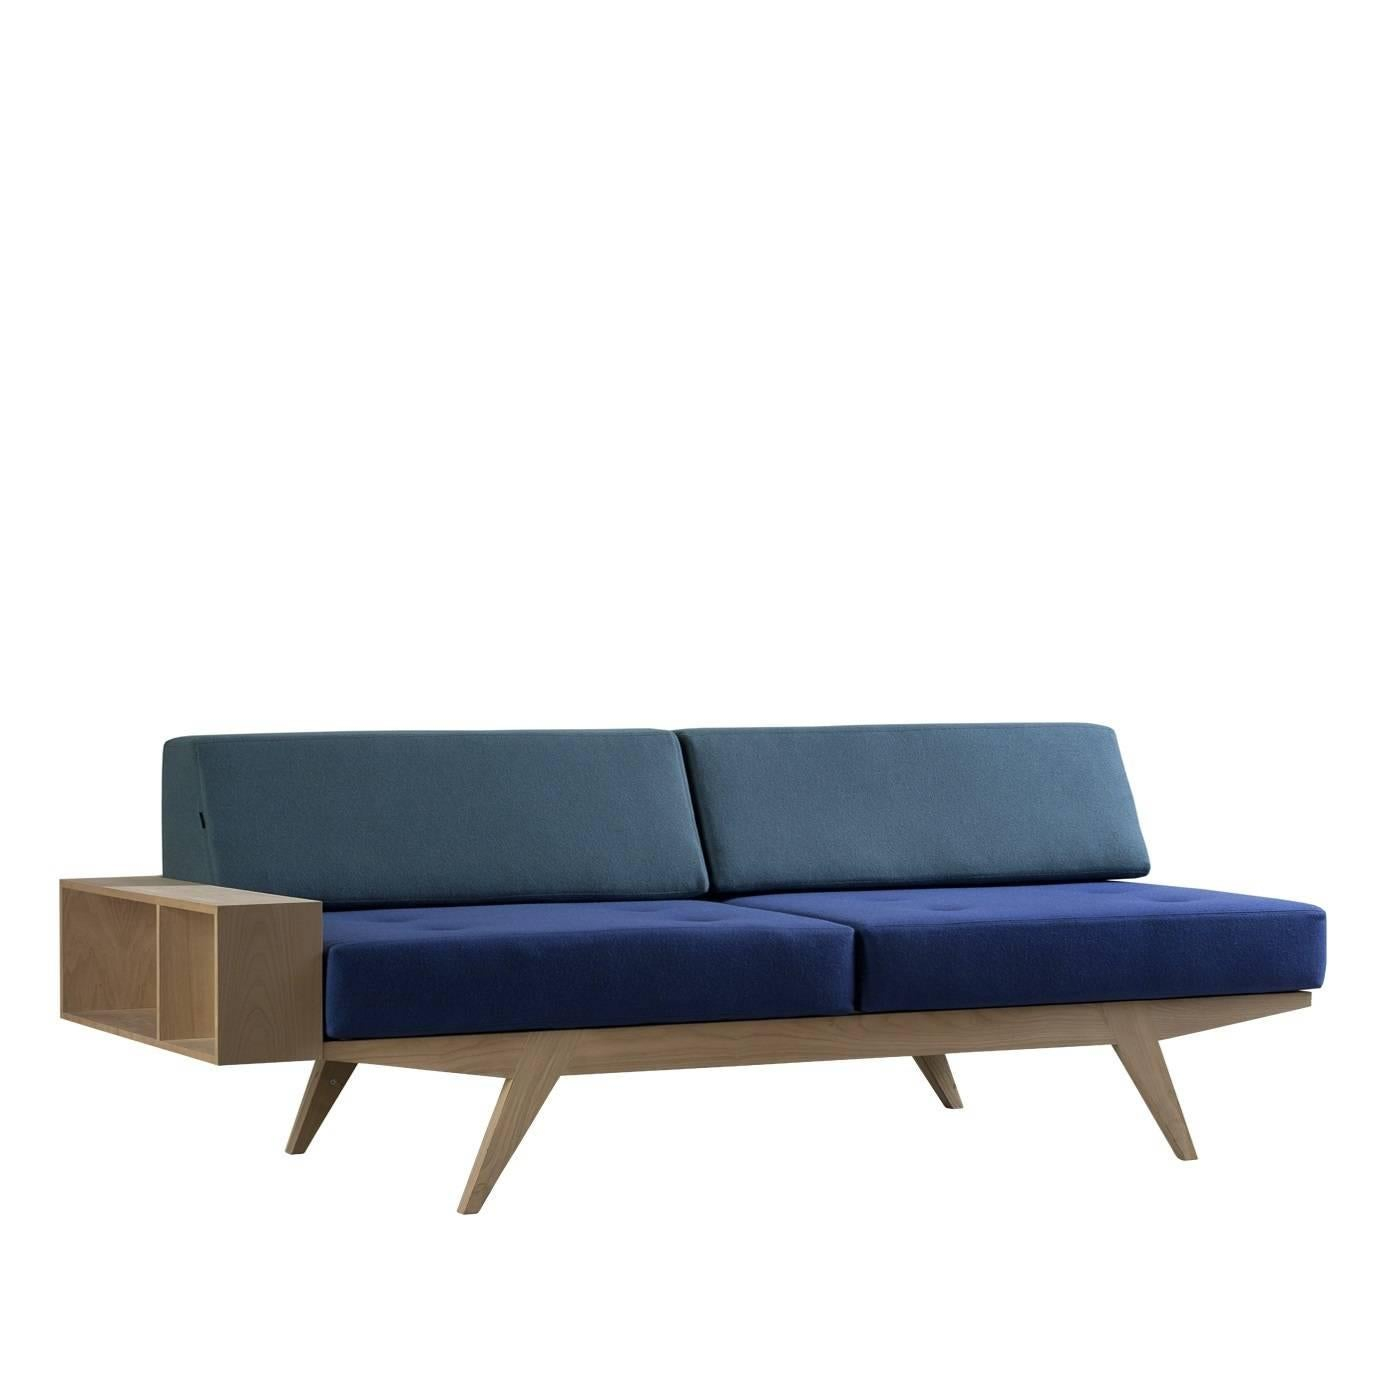 bohemian sofa bed sectional sofas with chaise under 1000 bauhaus 1930 s europe at 1stdibs gio